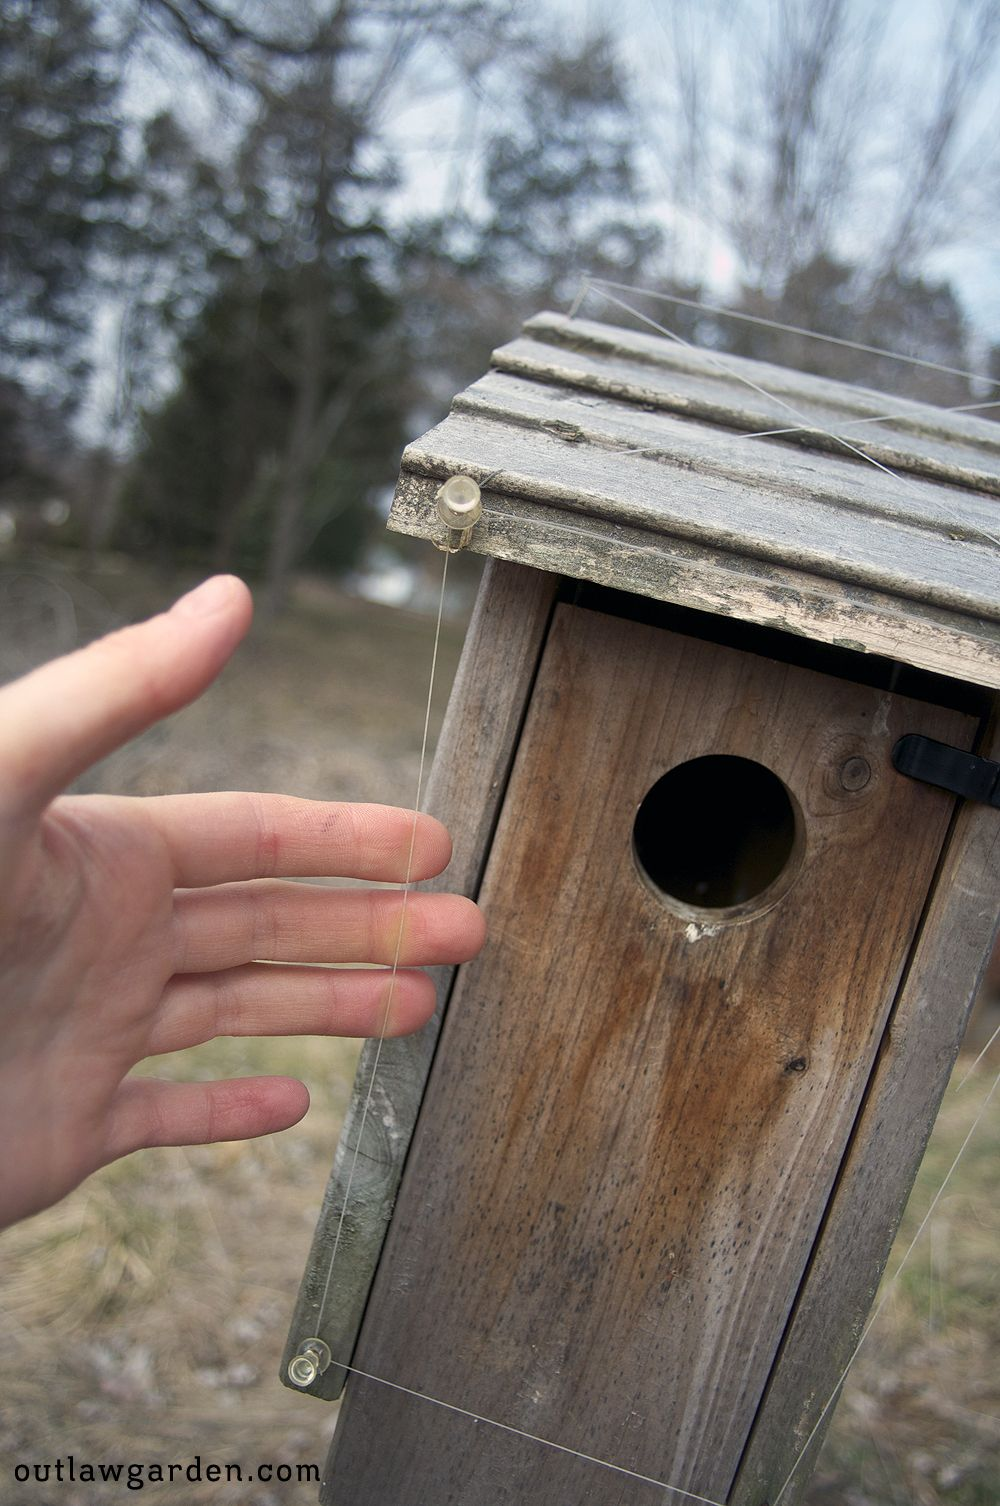 DIY: Easy house sparrow deterrent | for the birds | House ... Bird House Designs For Cool Sparrows on sparrow computer designs, sparrow art designs, sparrow control,